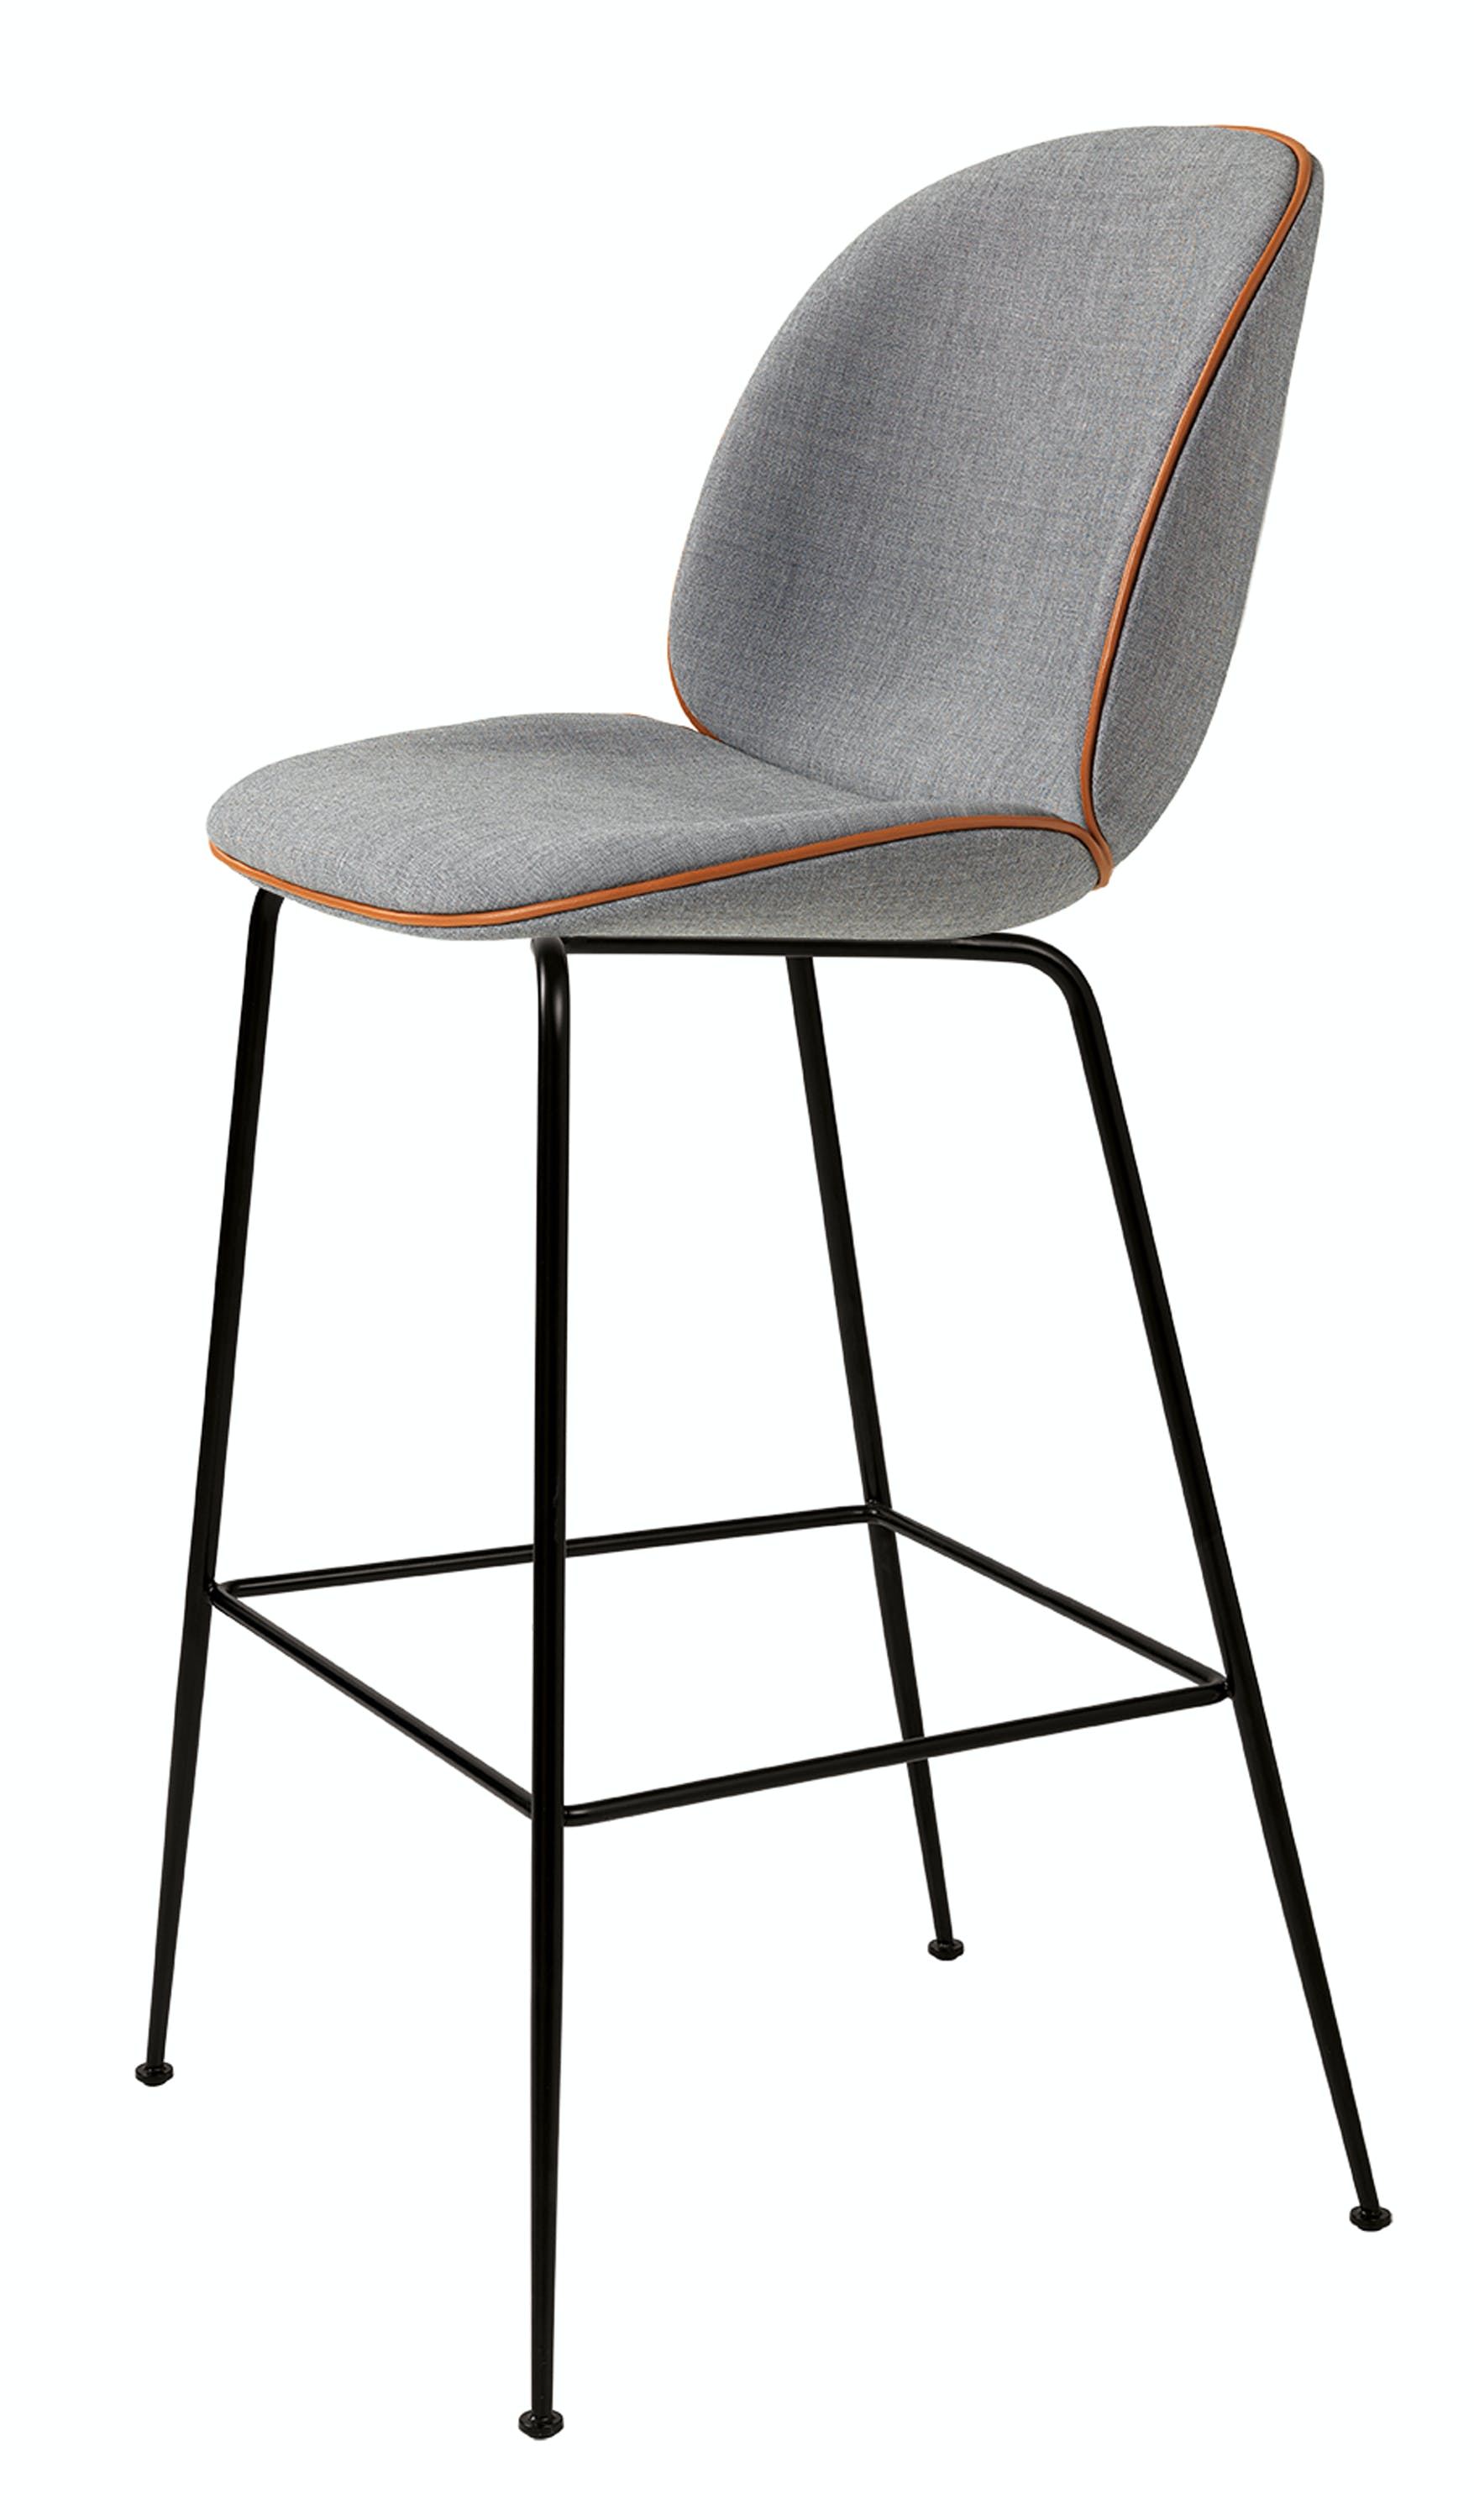 Beetle Stool Grey With Brown Leather Front 72Dpi Rgb Product